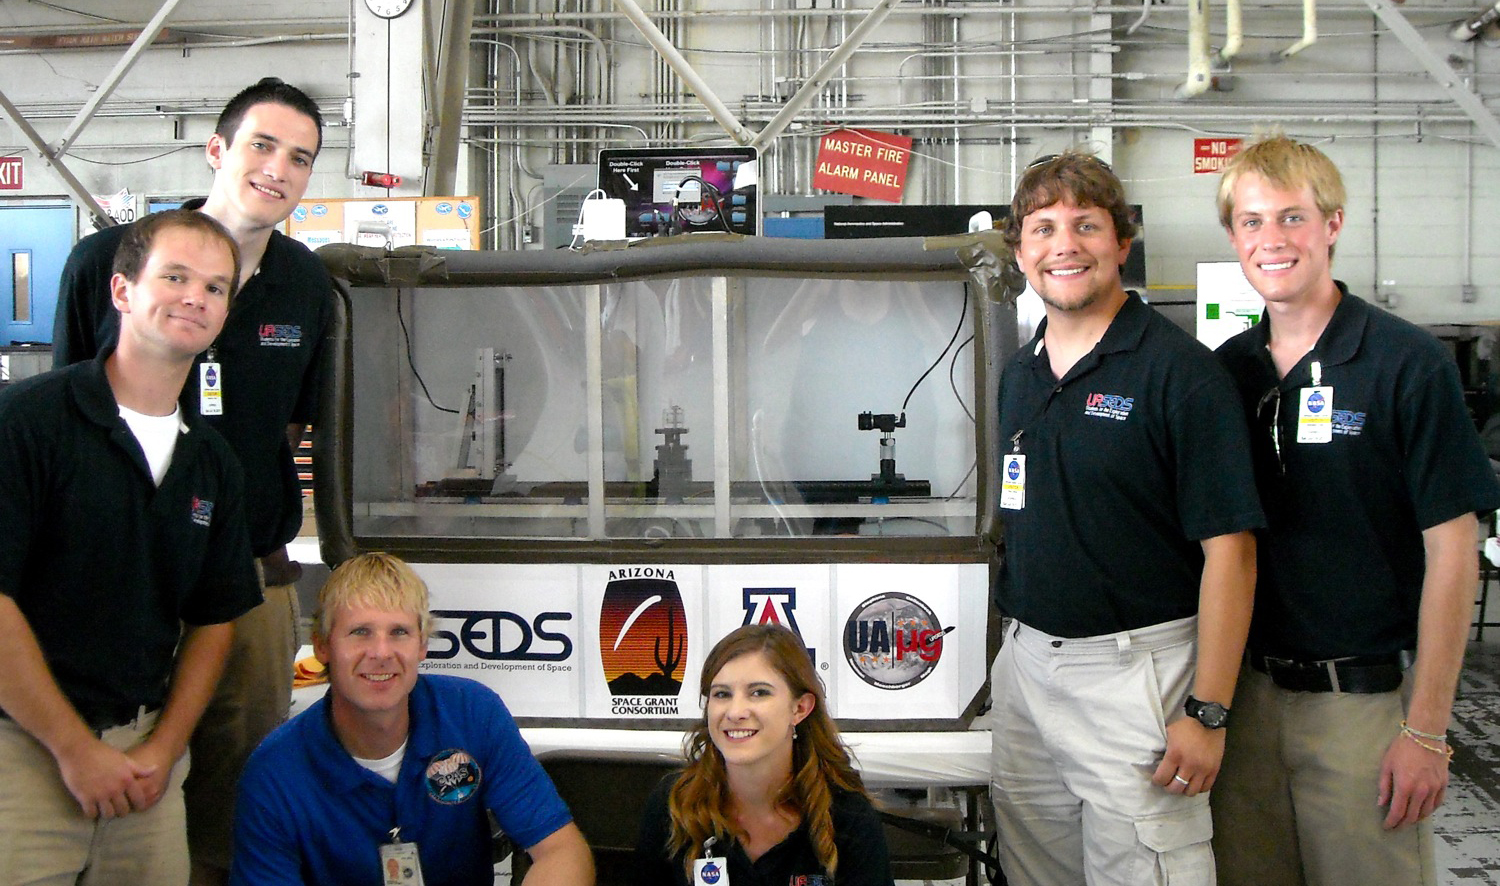 ANGEL team, Students for the Exploration and Development of Space (SEDS)